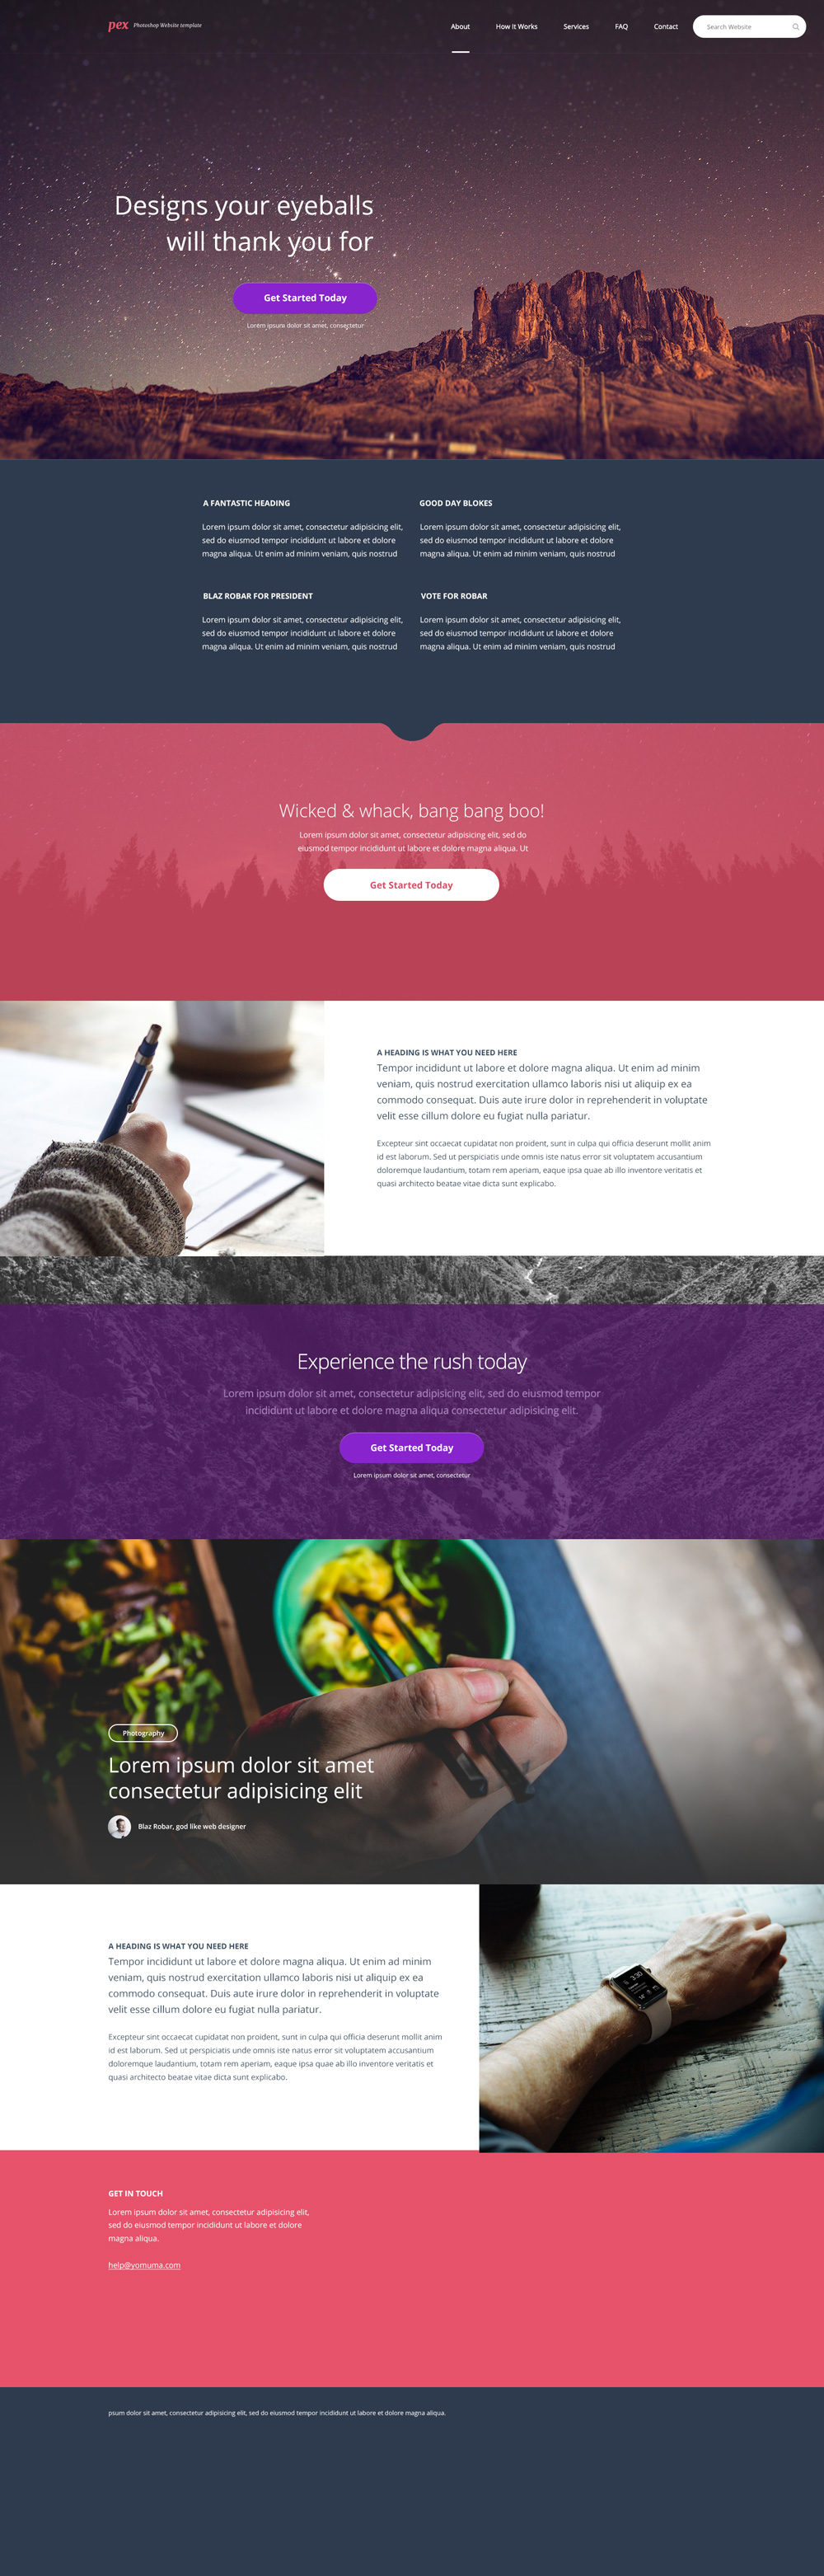 Free PSD Website Templates Free PSD Templates - Brochure website templates